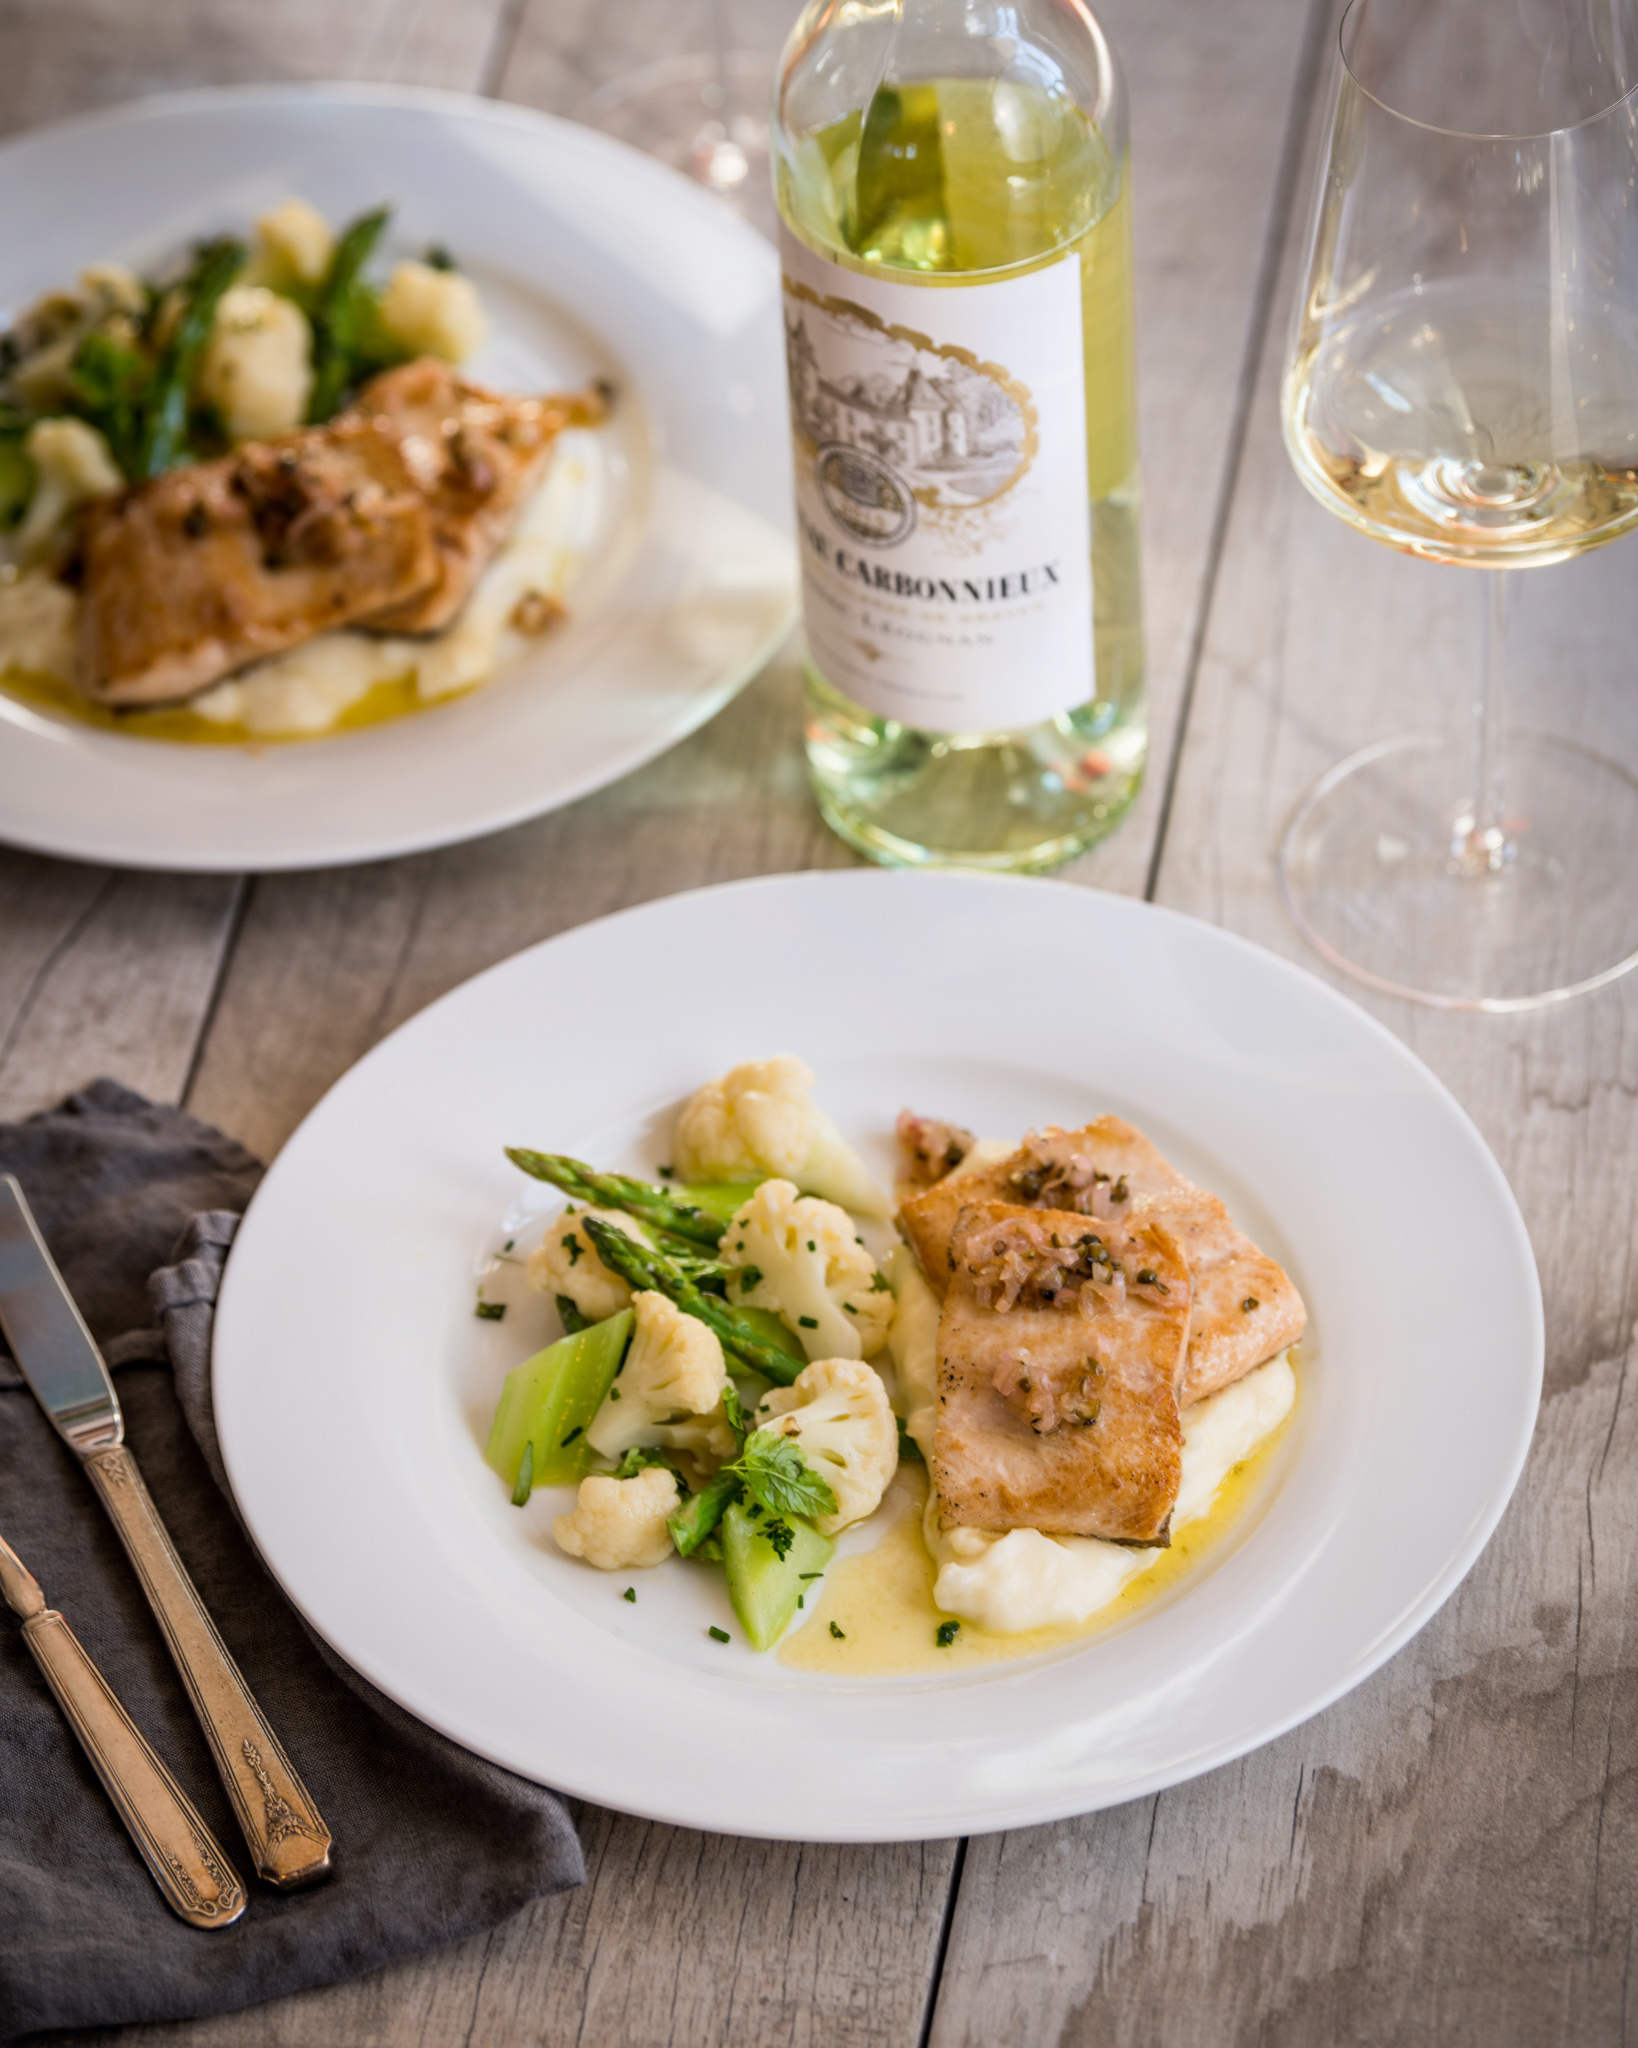 In the spirit of Bordeaux, France  : Sautéed trout with shallot and green peppercorn, whipped potatoes, vegetables with tarragon and butter : Paired with Carbonnieux blanc